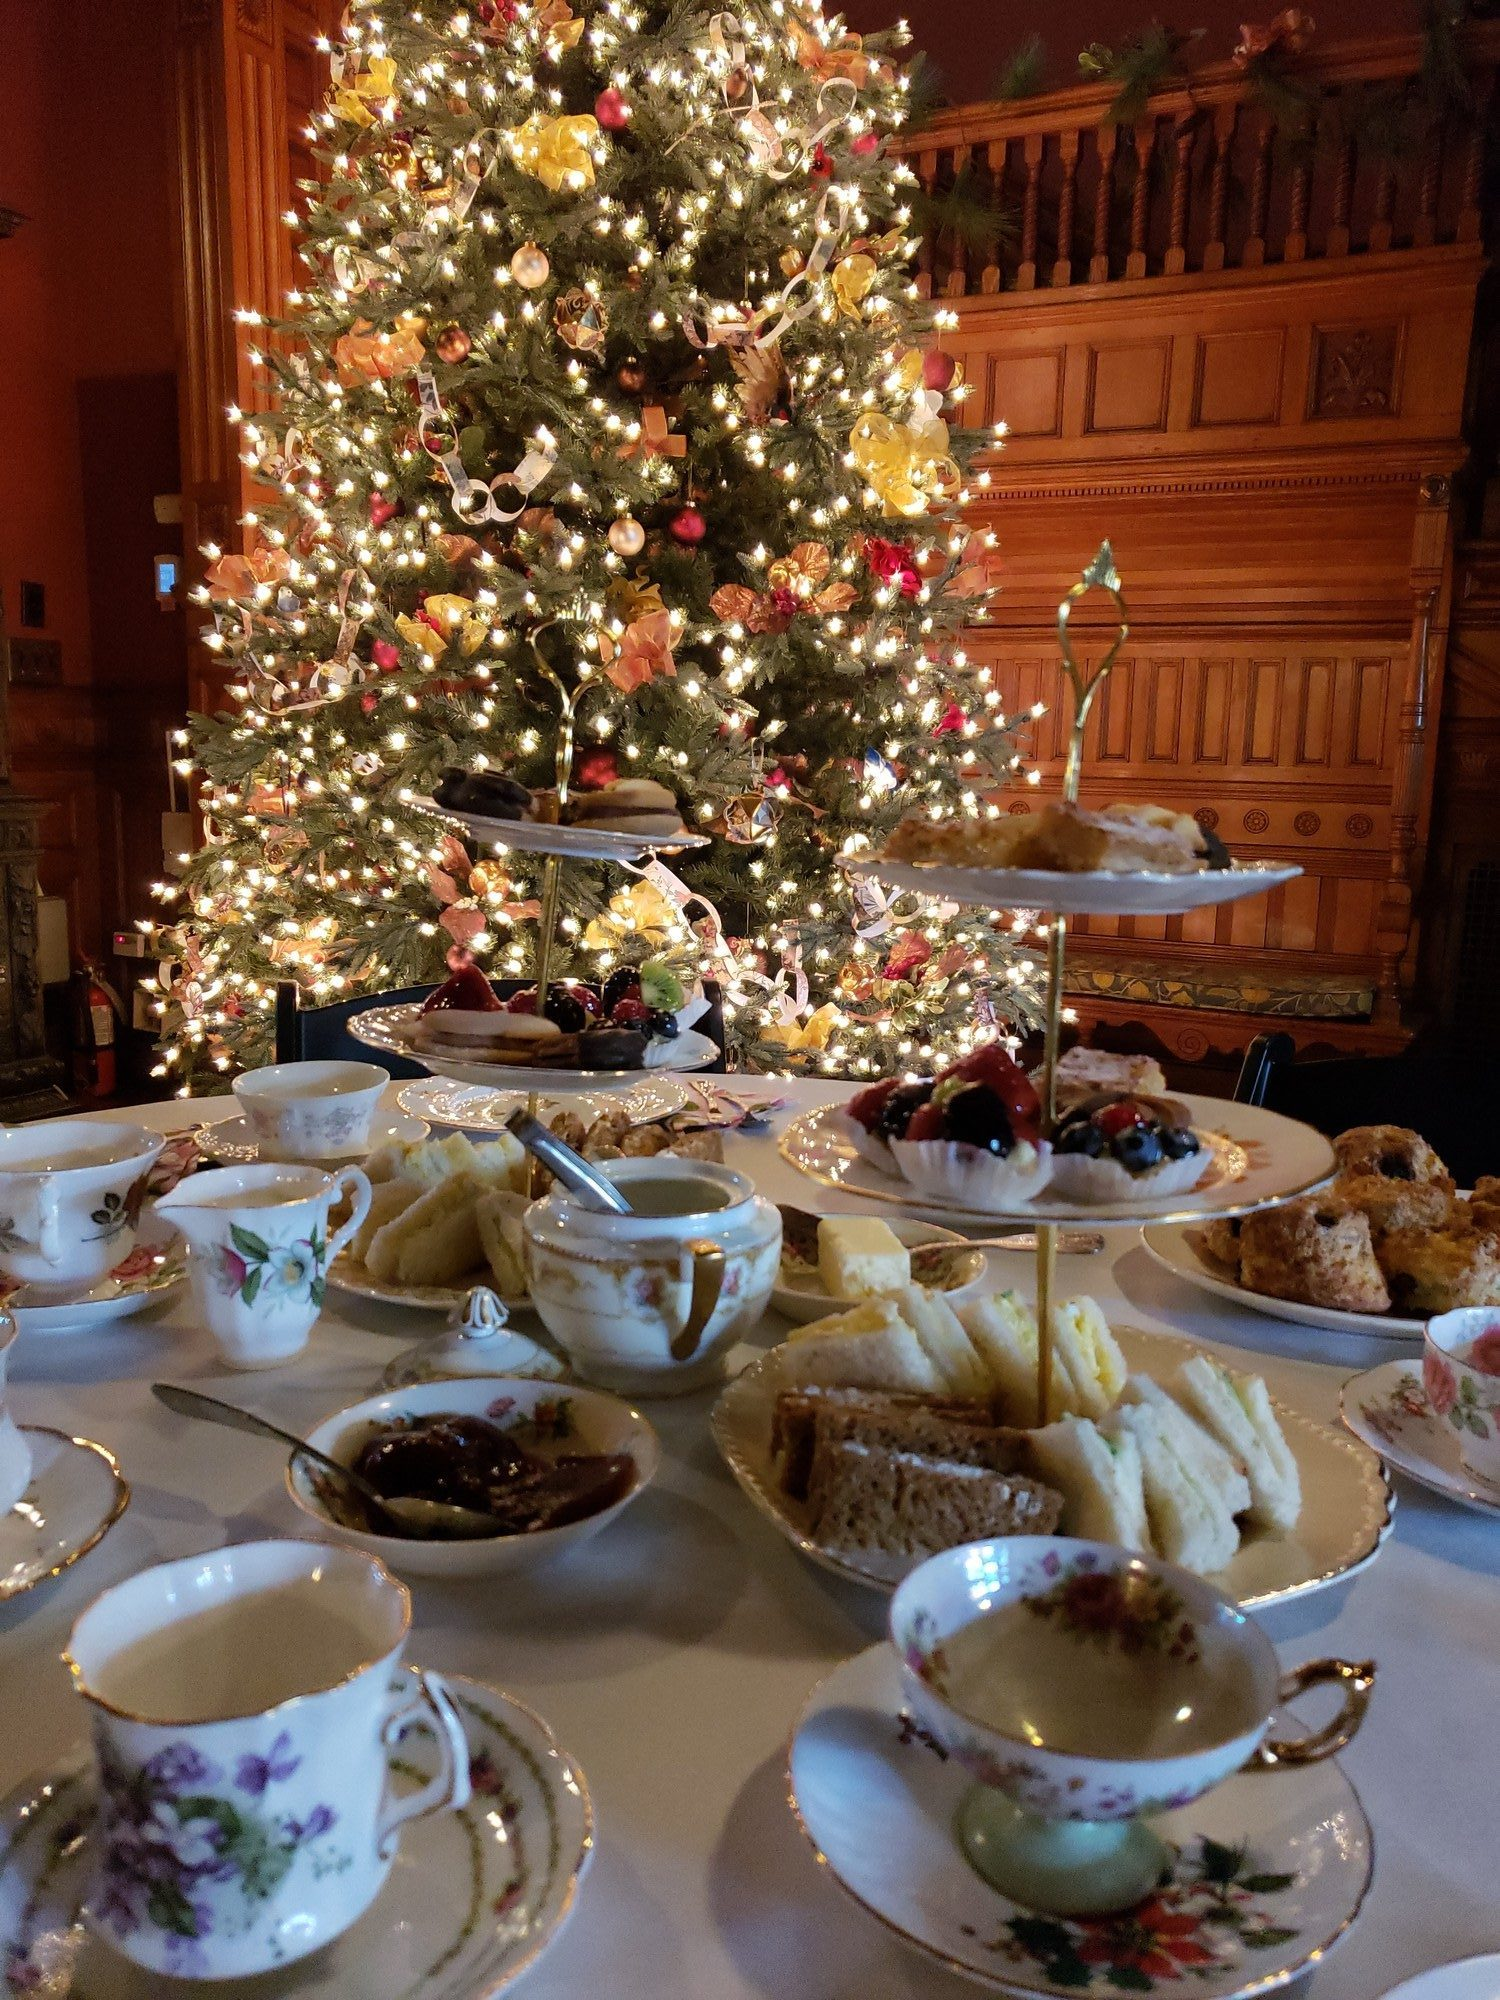 A table with teacups, finger sandwiches, and desserts with a Christmas tree in the background.